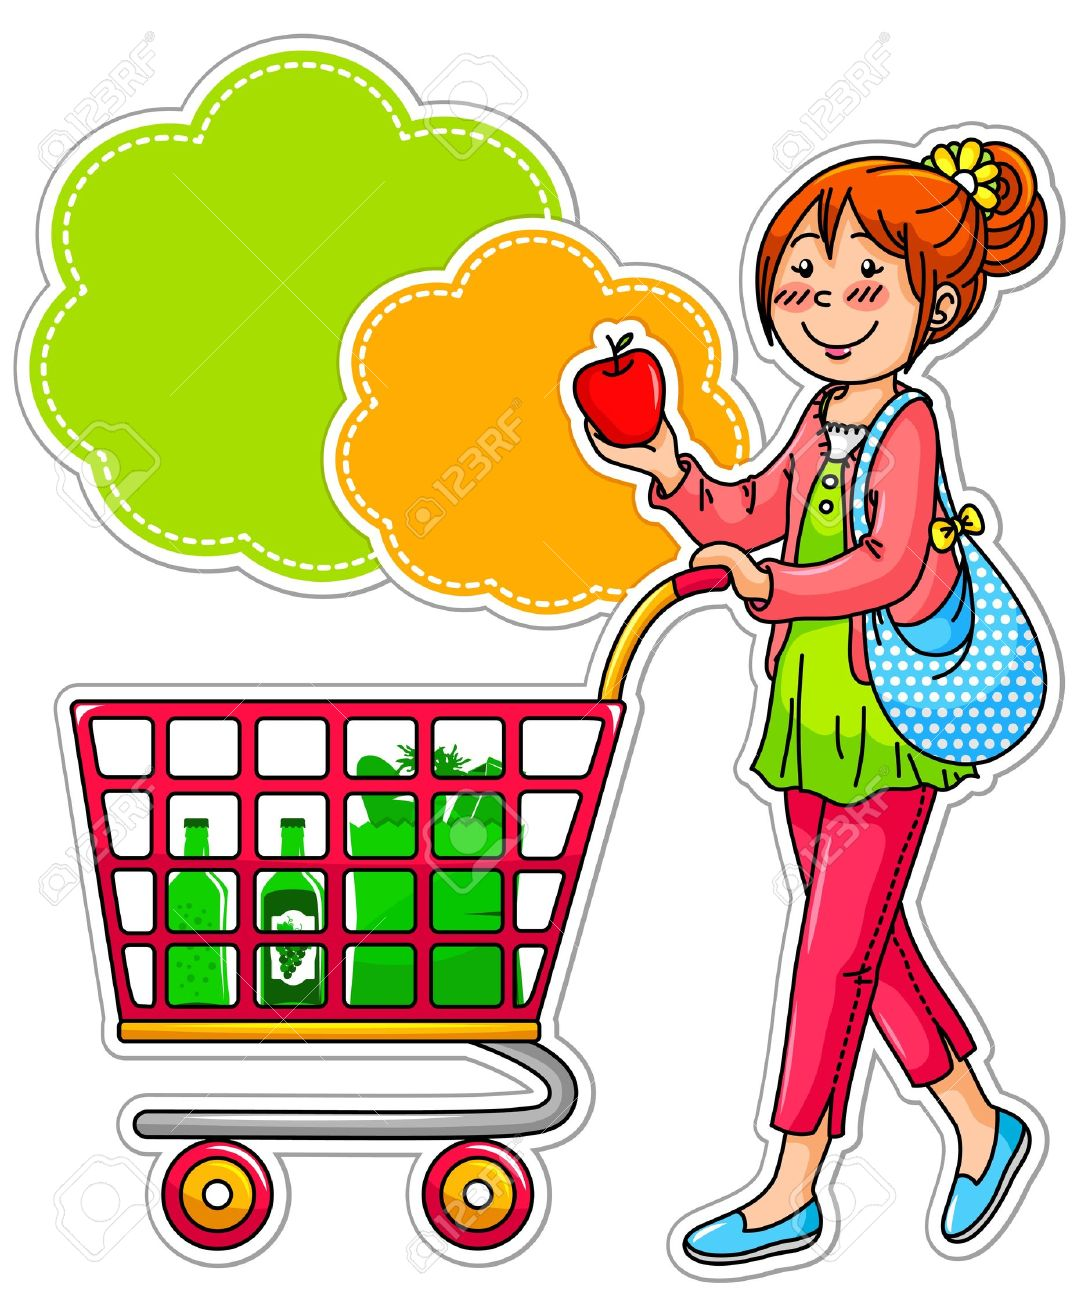 Free Free Grocery Cliparts, Download Free Clip Art, Free Clip Art on.